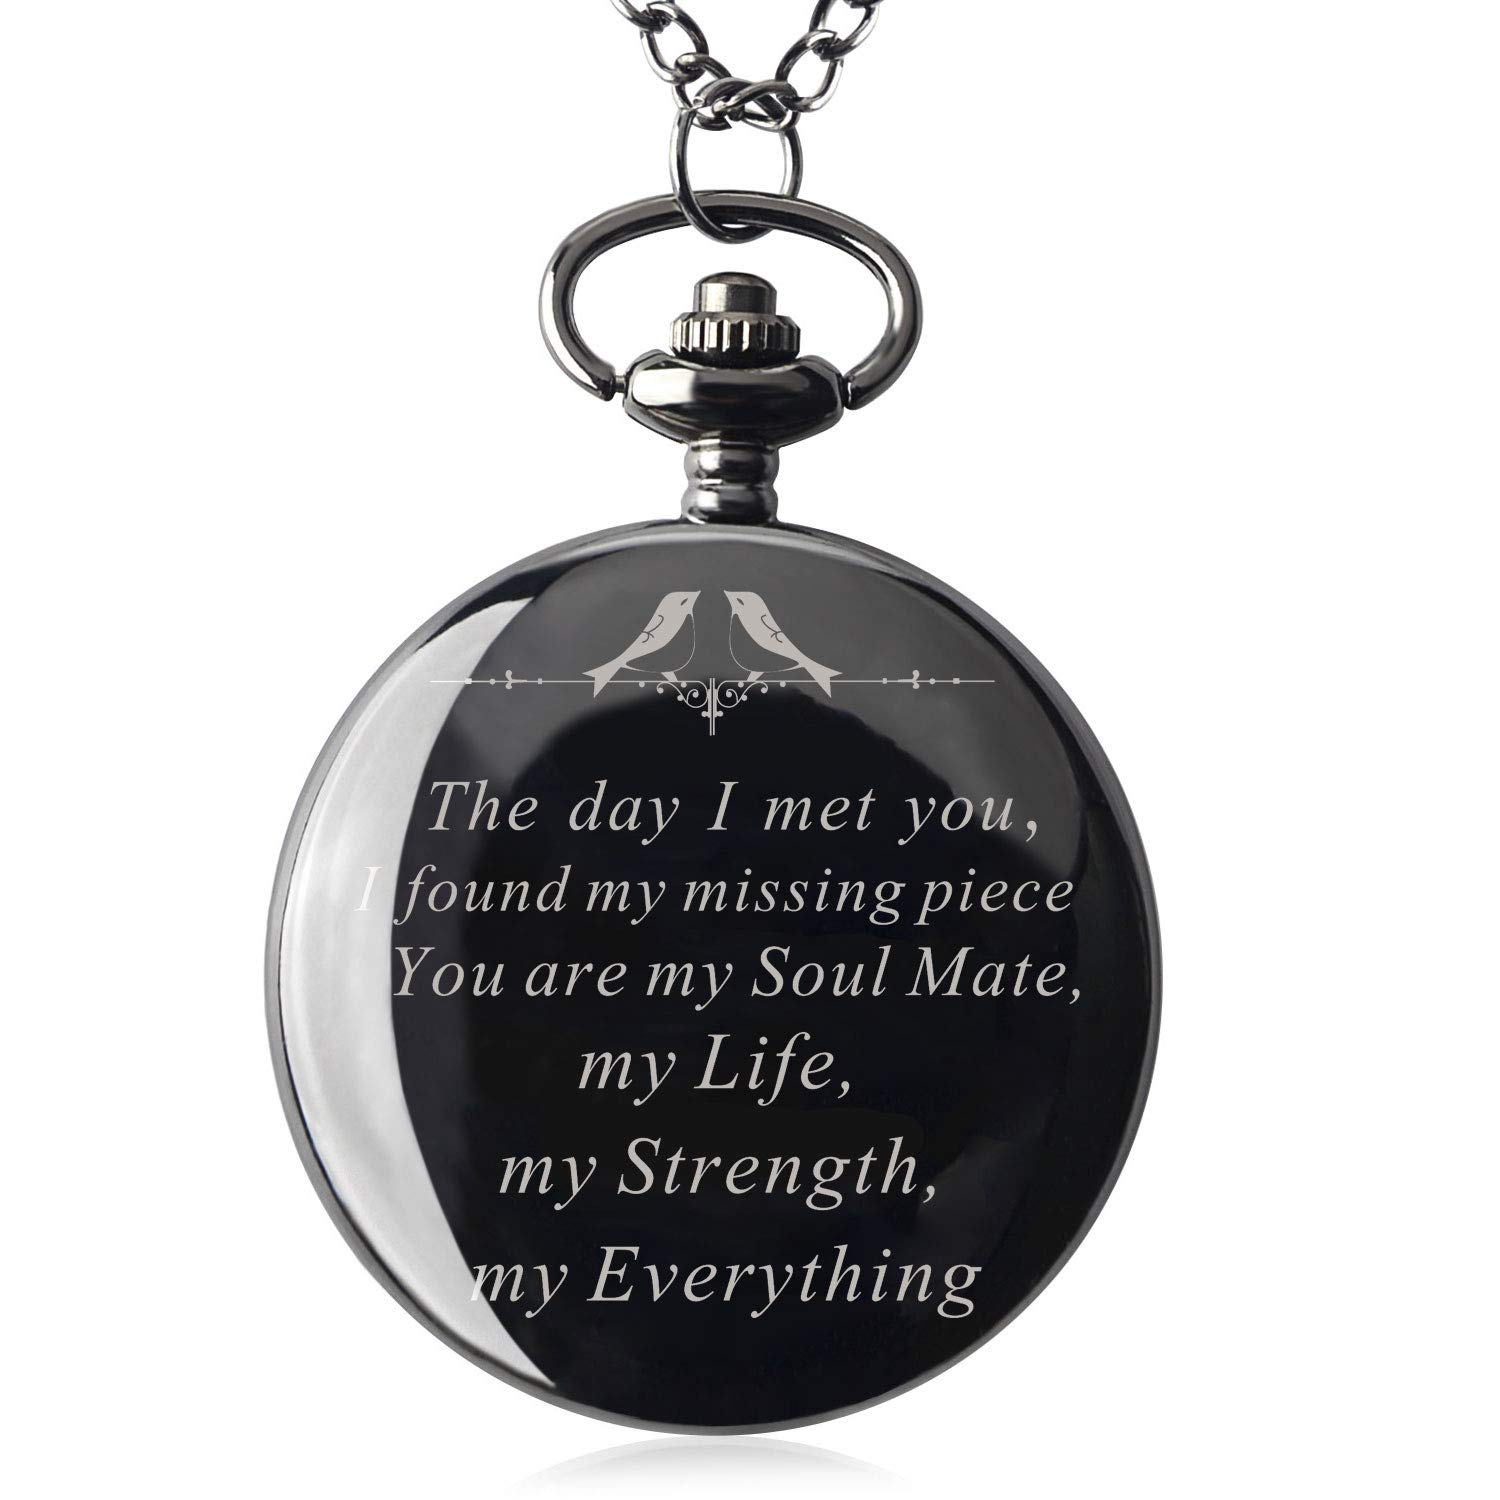 Mens Engraved Gifts for Valentine's Day, Anniversary Birthday Graduation Christmas Personalized Mechanical Pocket Watch with Gift Box (The Day I met You) by Ginasy (Image #1)